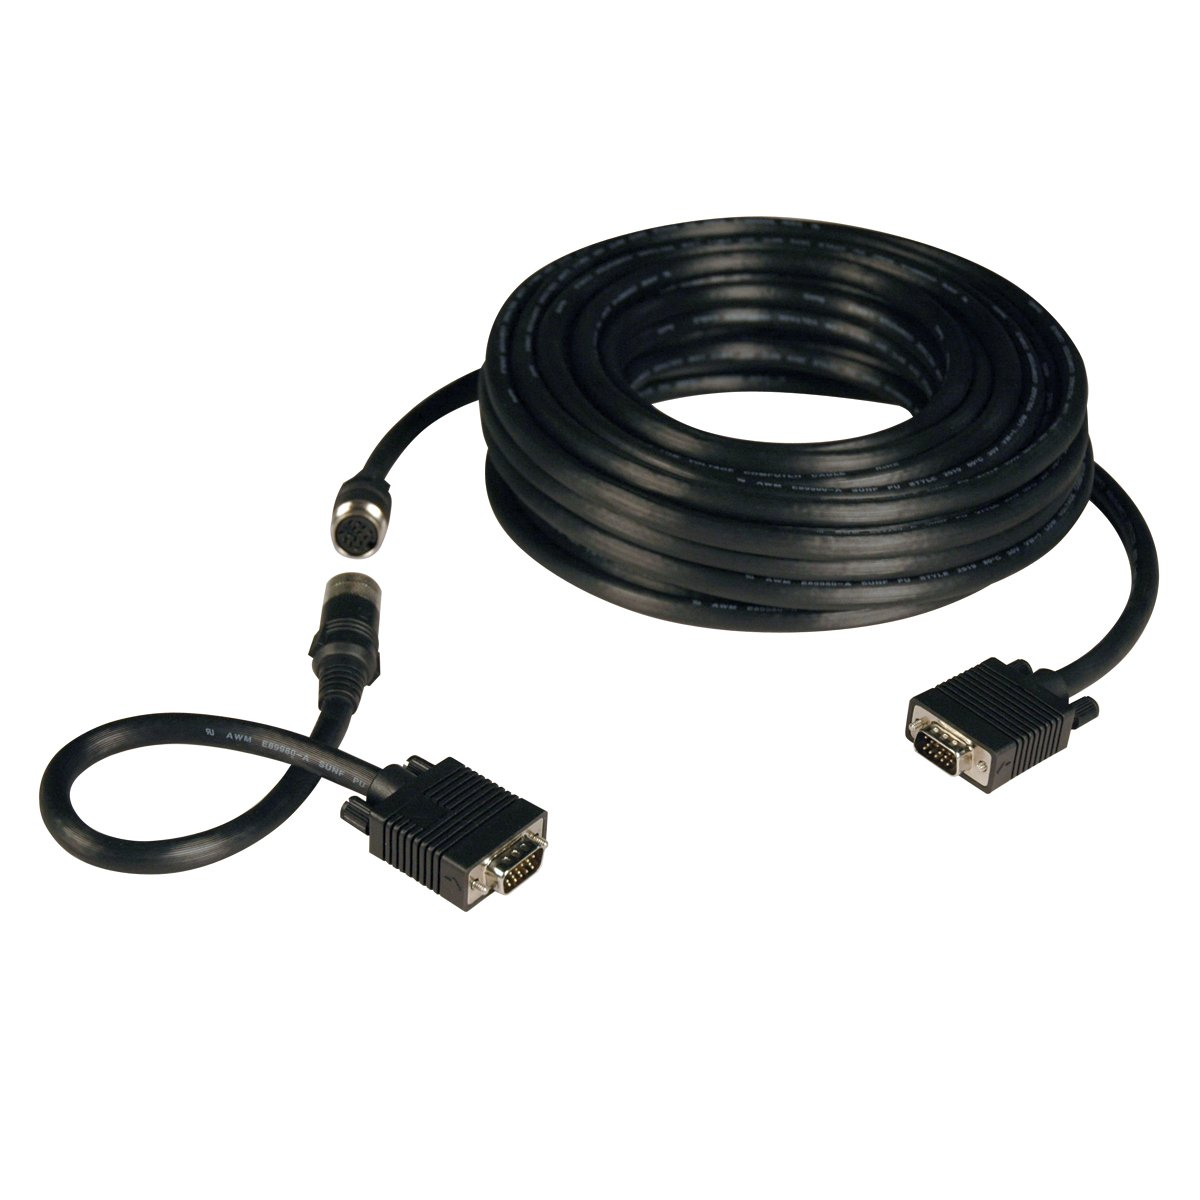 Tripp Lite VGA Coax Monitor Easy Pull Cable , High Resolution cable with RGB coax (HD15 M/M) 50-ft.(P503-050)